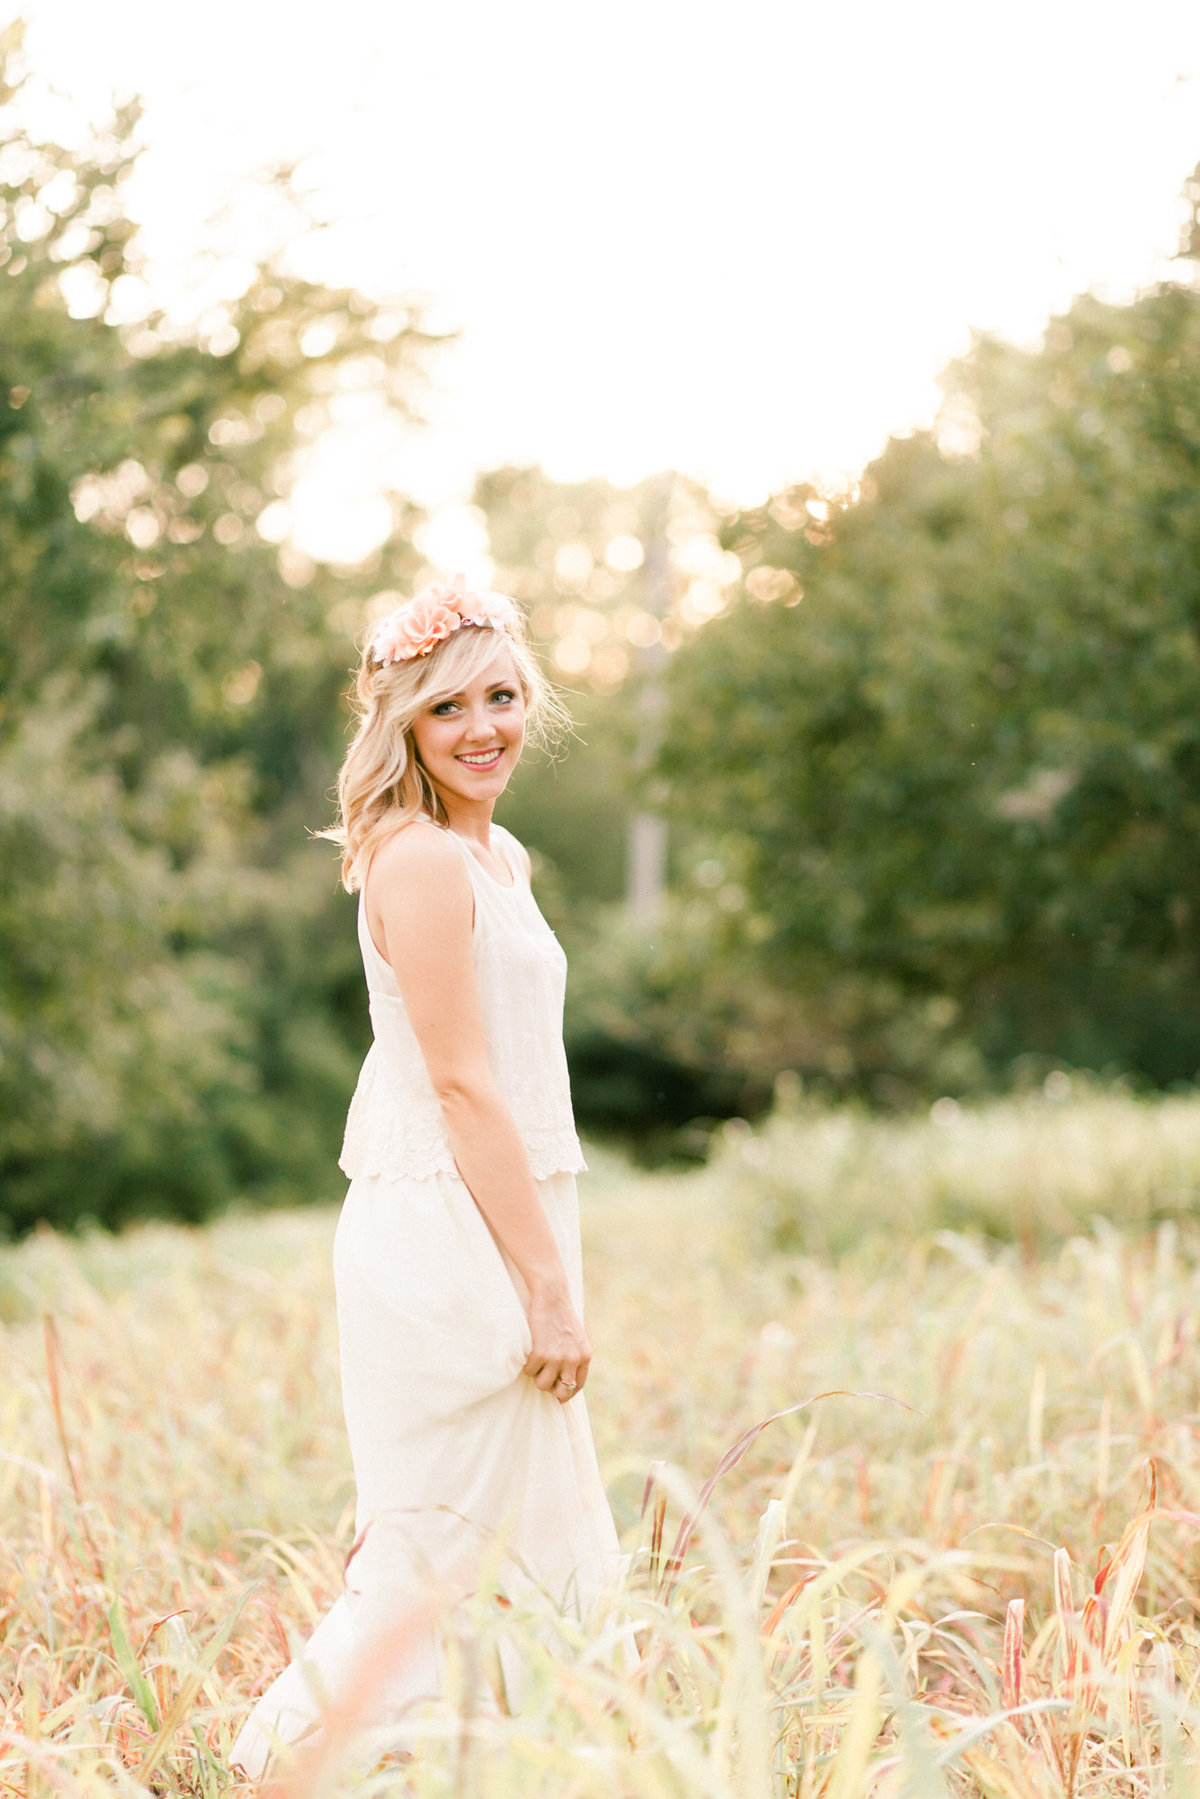 faust-park-saint-louis-missouri-wedding-photos-1015